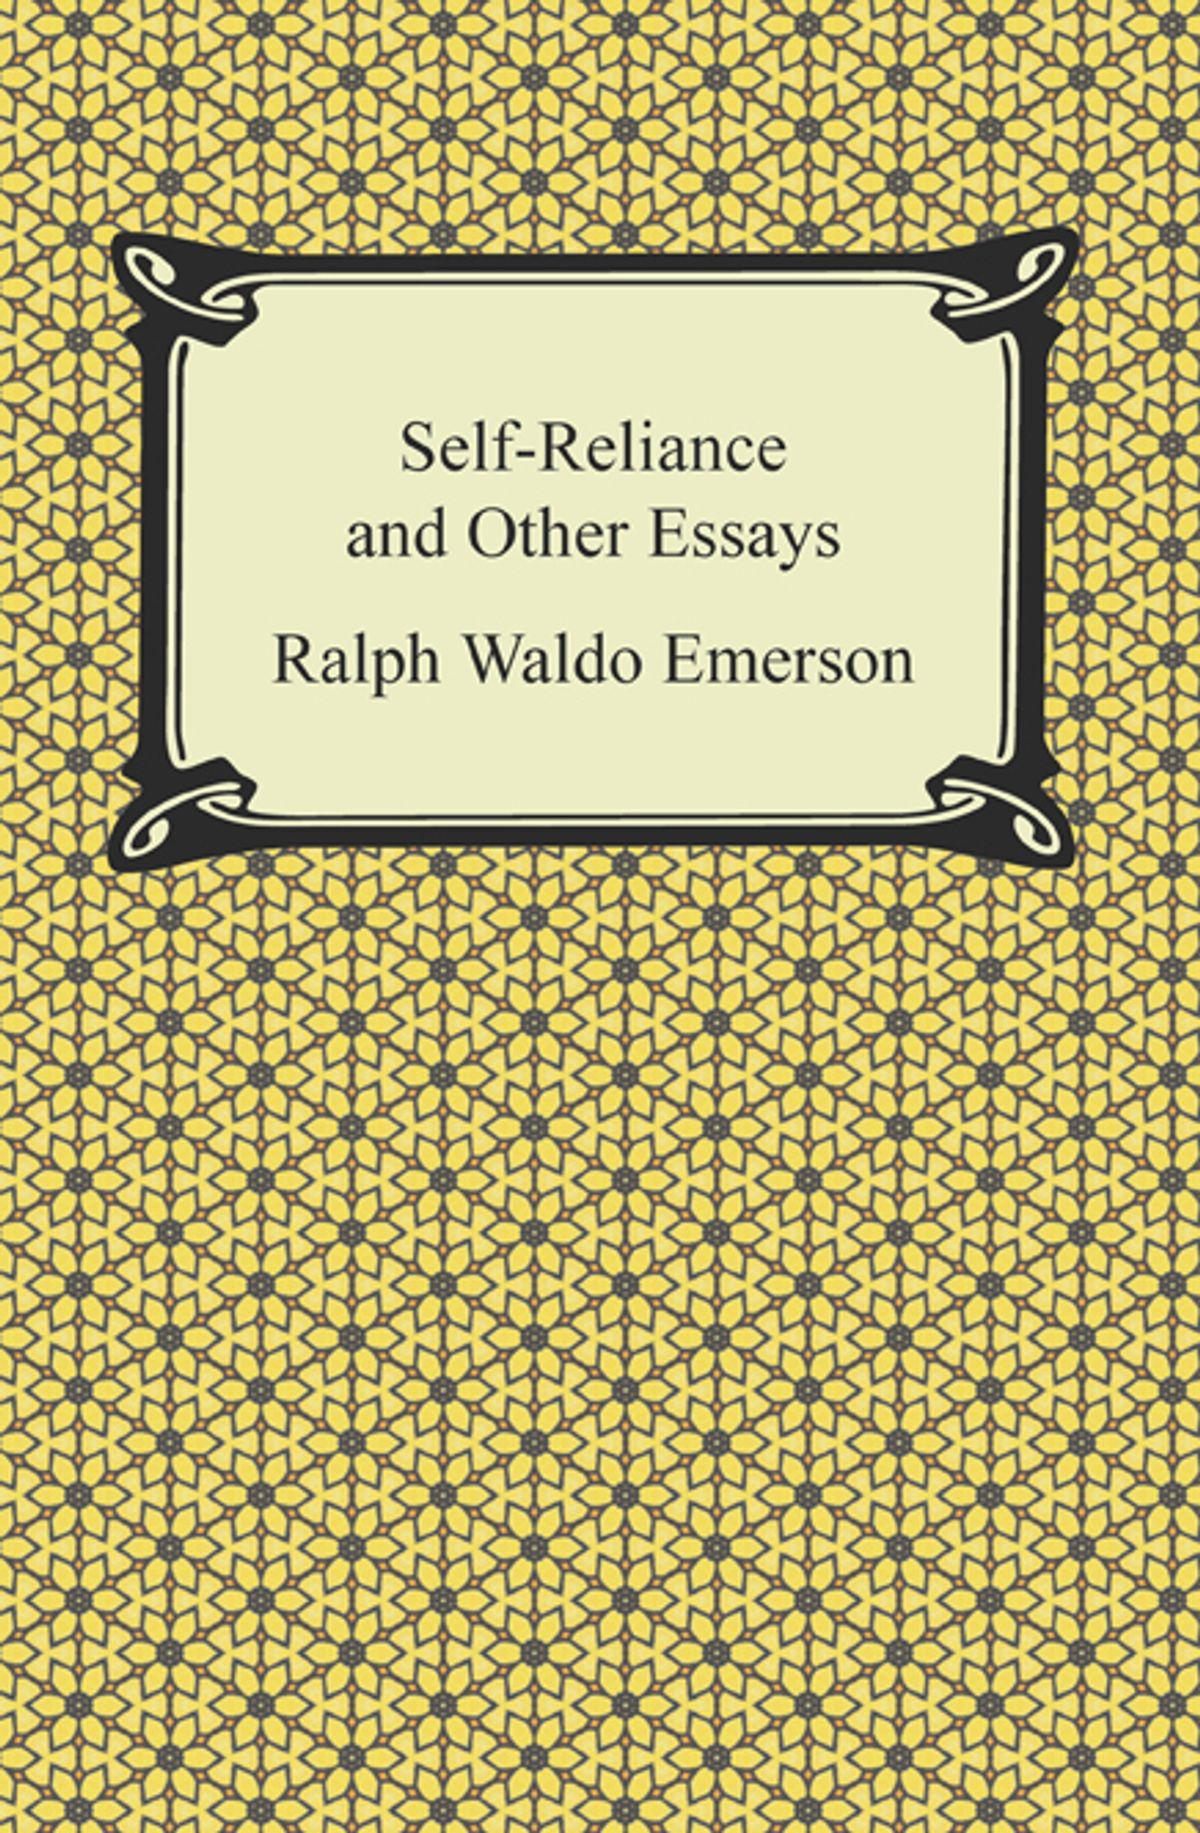 017 Self Reliance And Other Essays Essay Example Formidable Ekşi Self-reliance (dover Thrift Editions) Pdf Epub Full